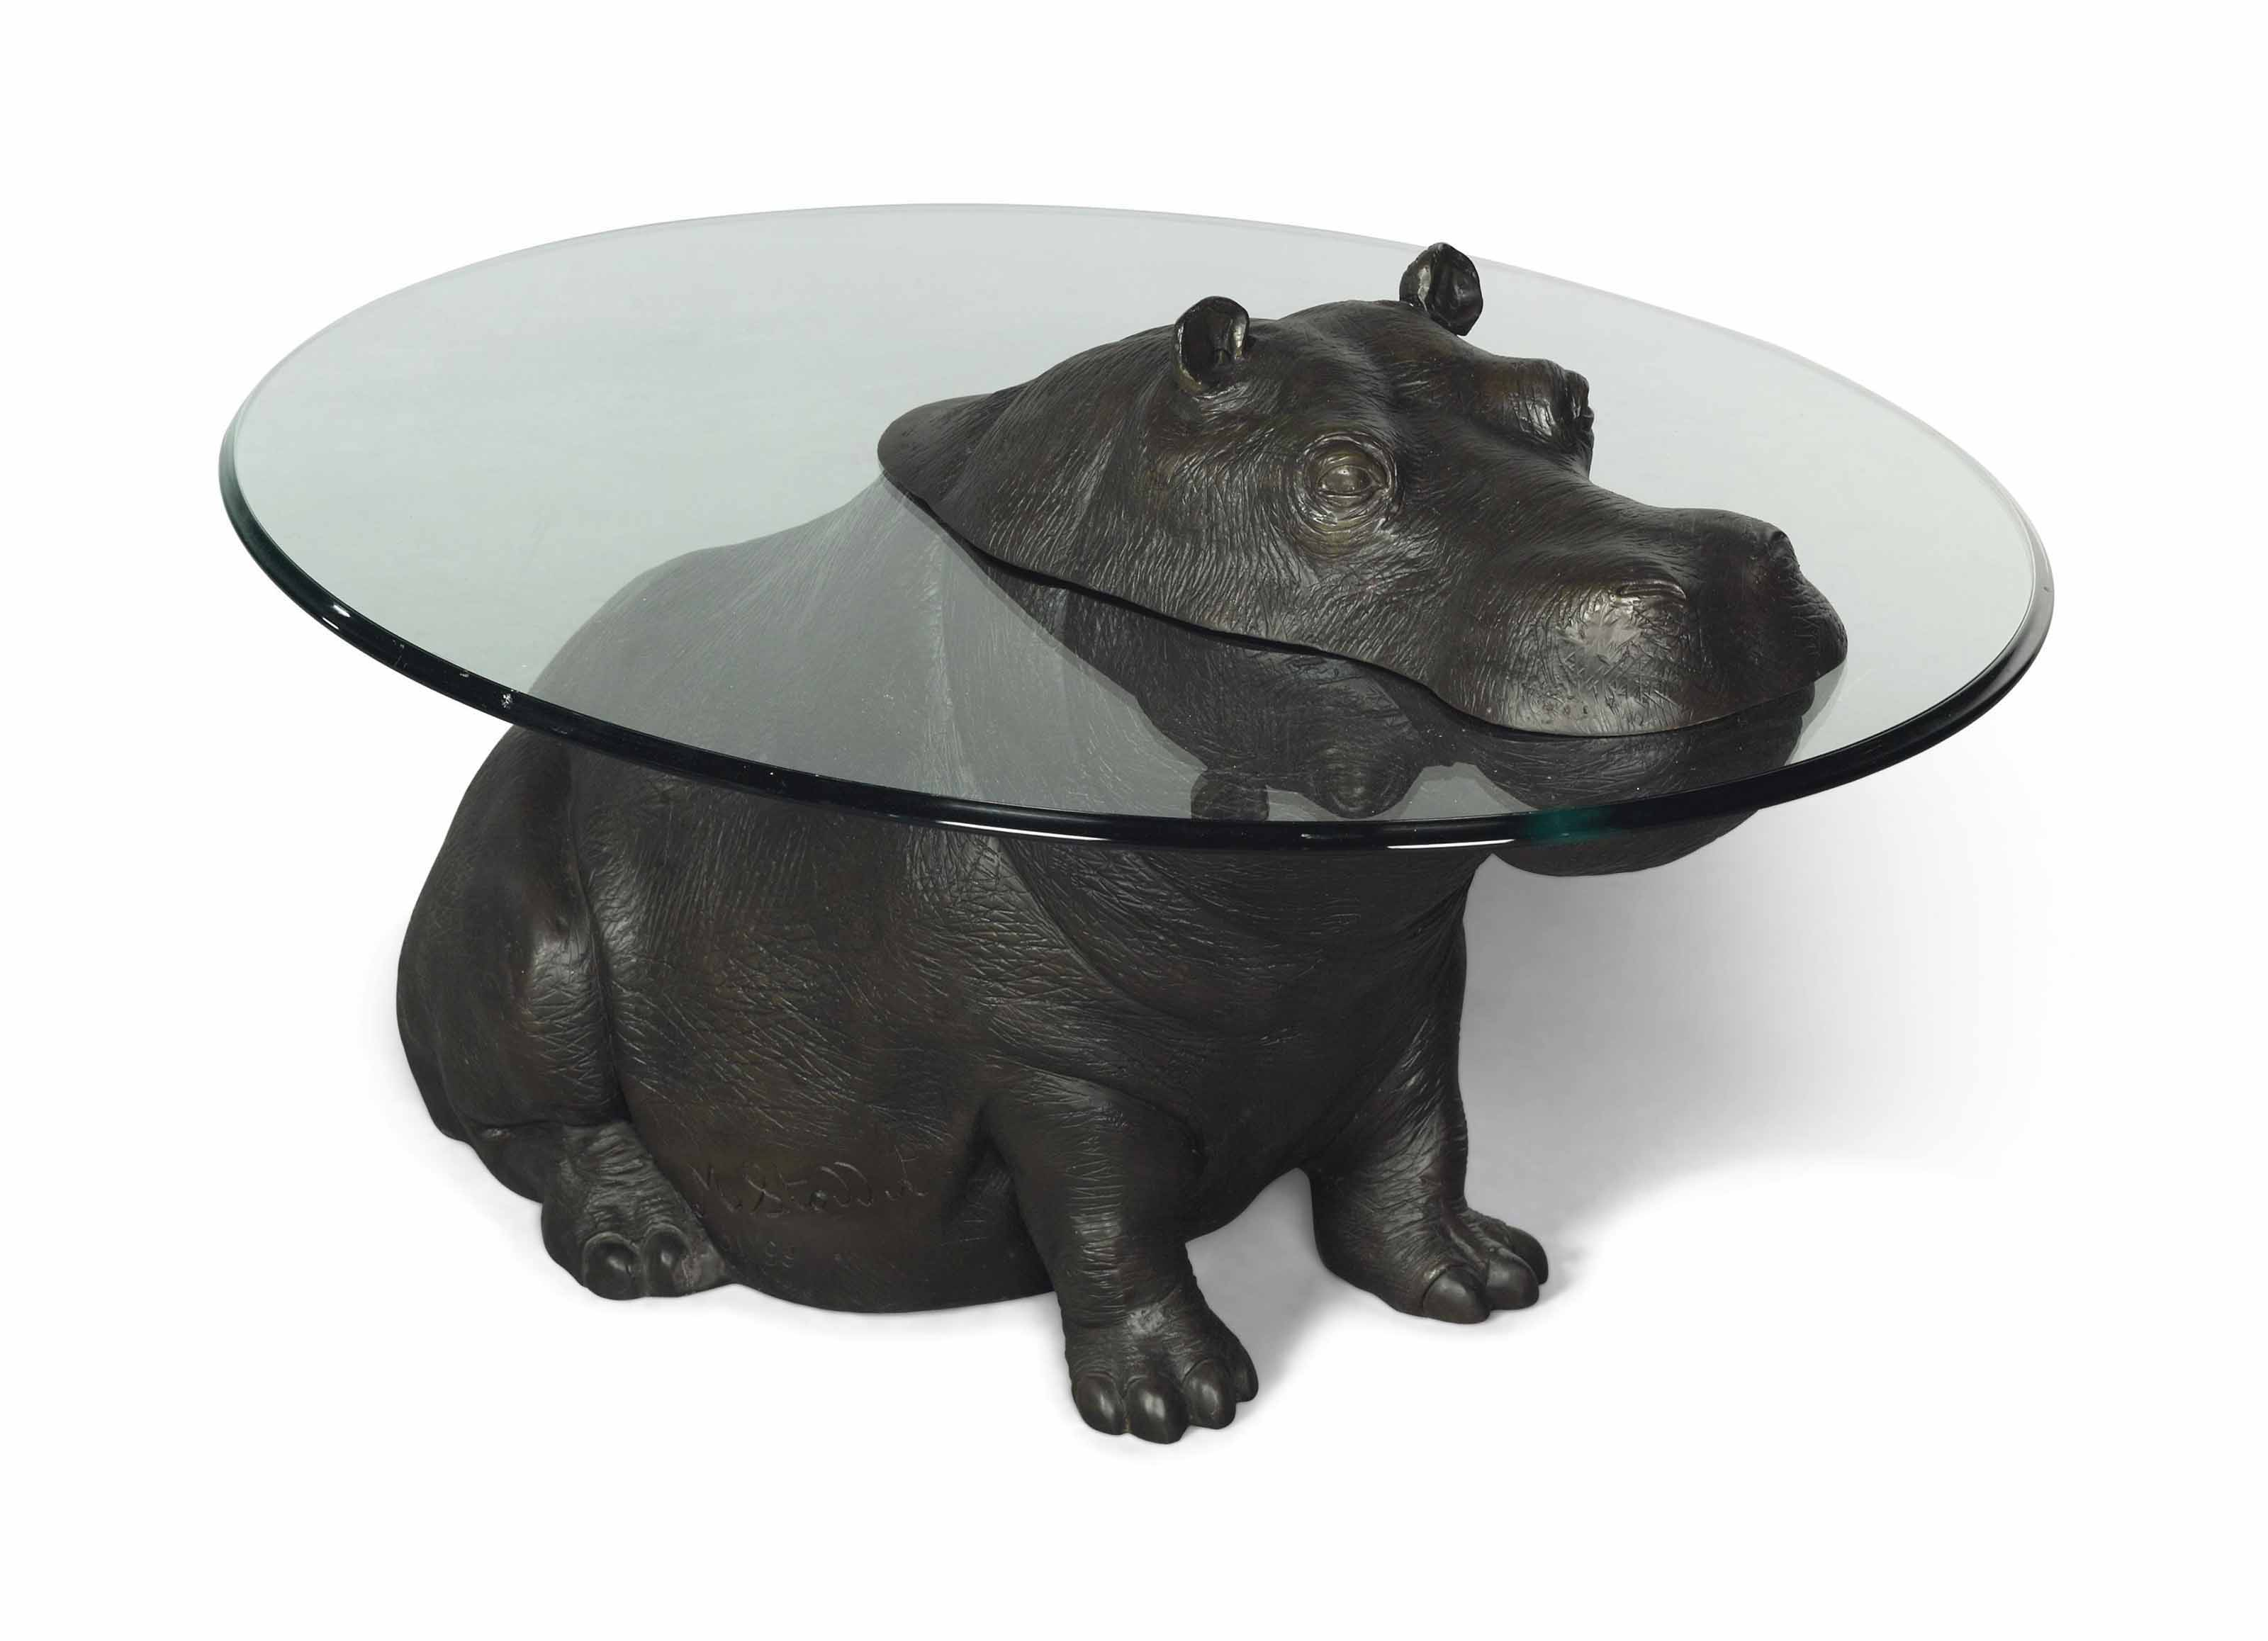 Mark Stoddart Cheeky Hippo Occasional Table 2001 Furniture